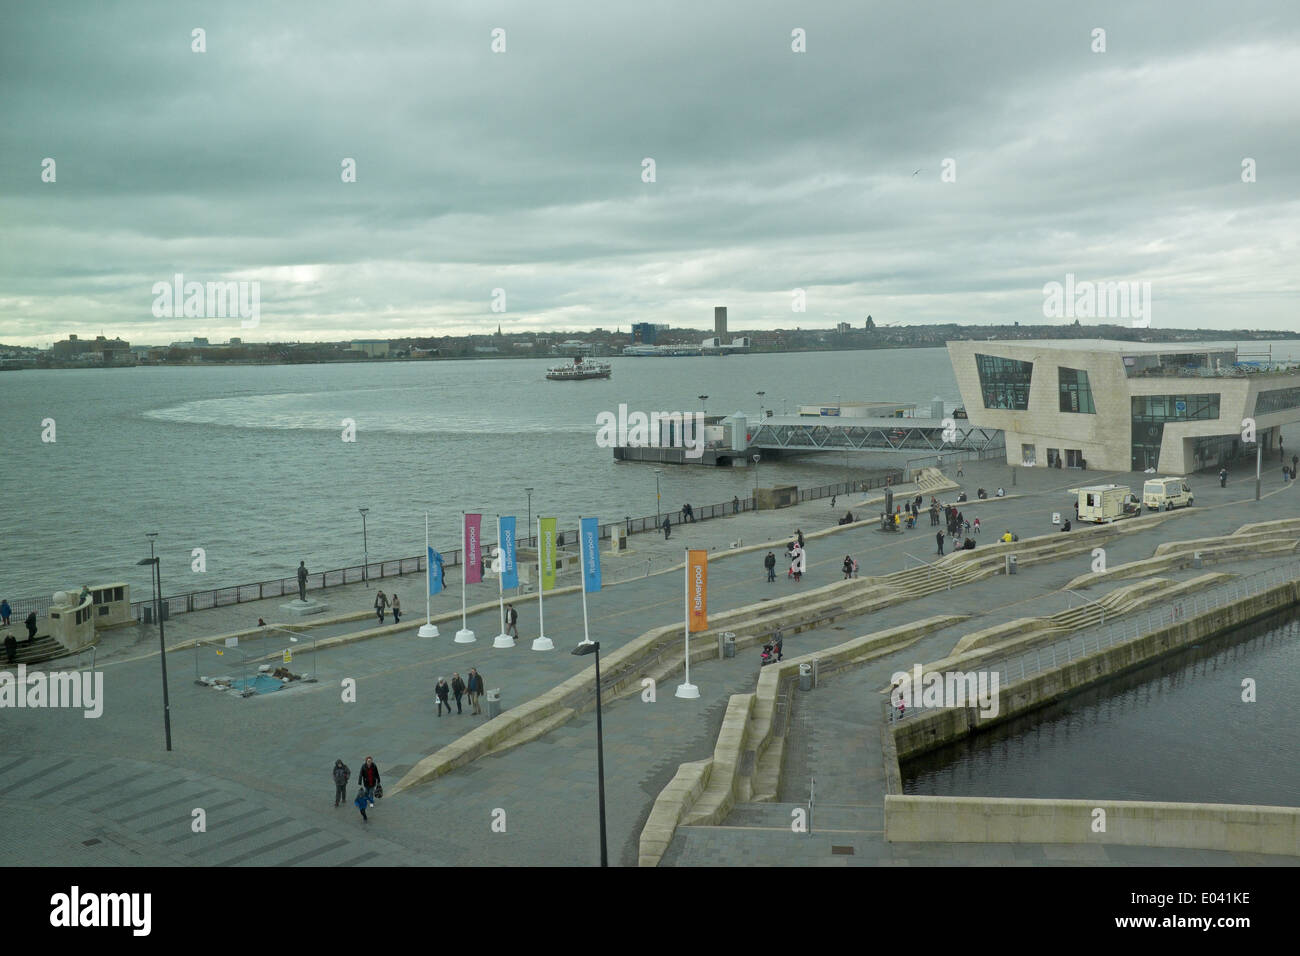 The Mersey Ferry leaves the Pier Head Terminal in Liverpool - Stock Image